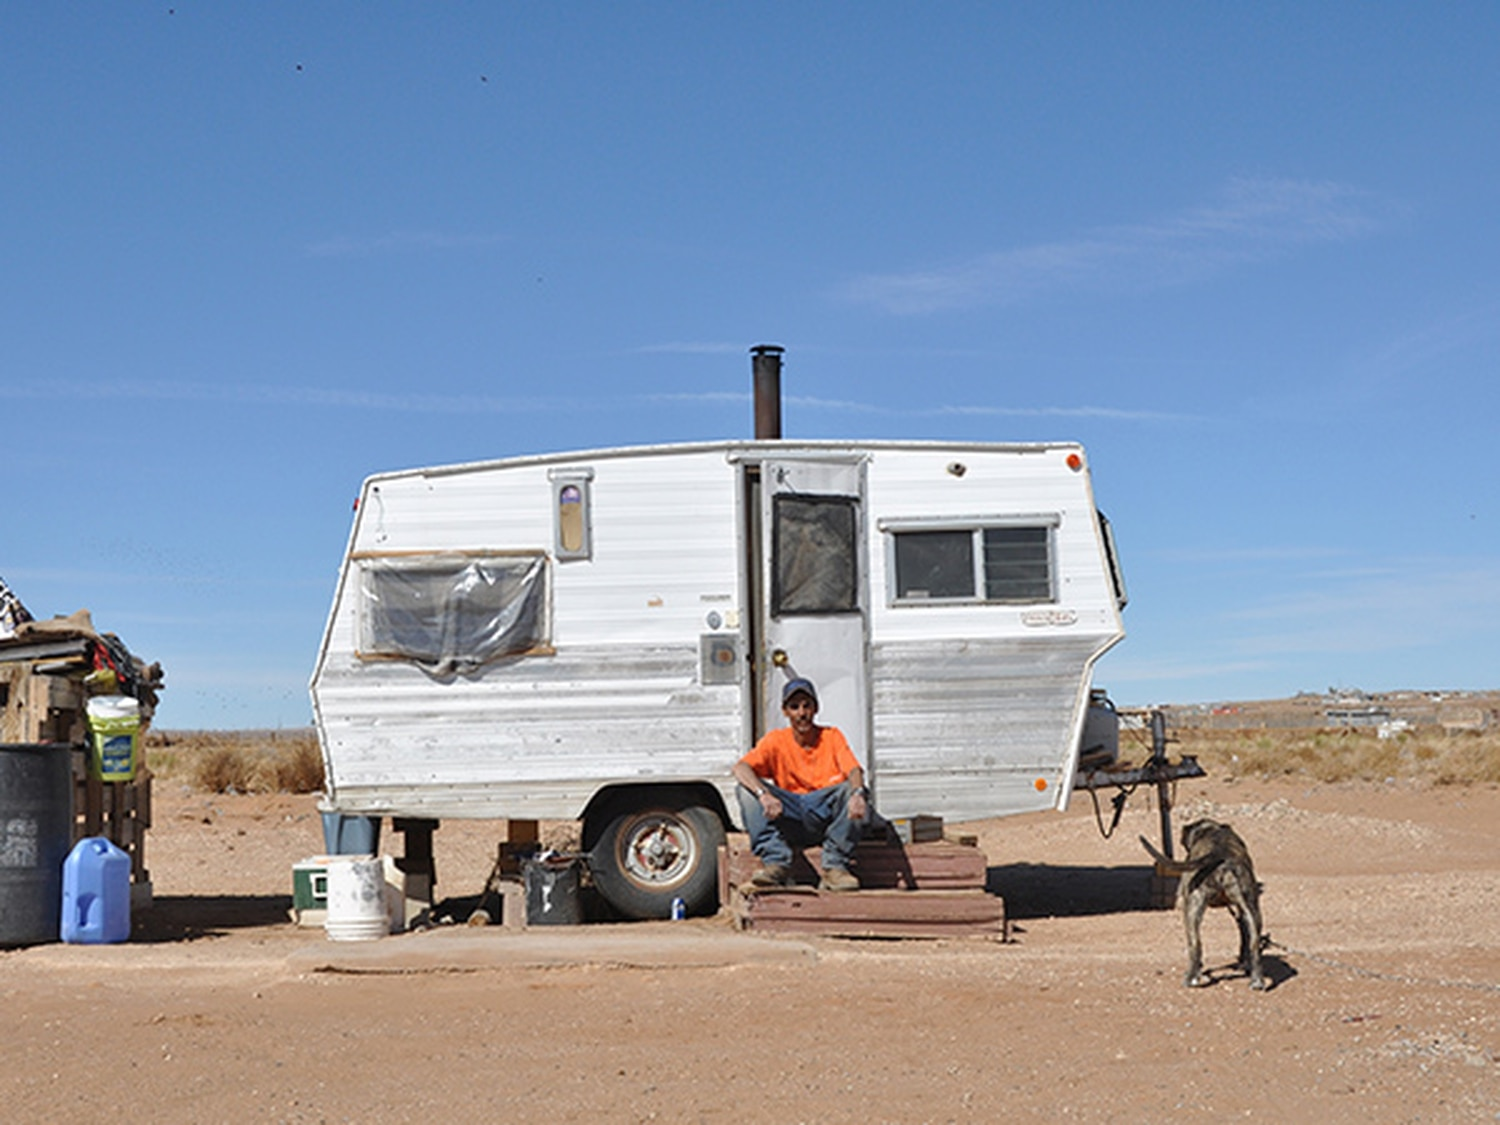 Victor Armijo sitting in front of his trailer.